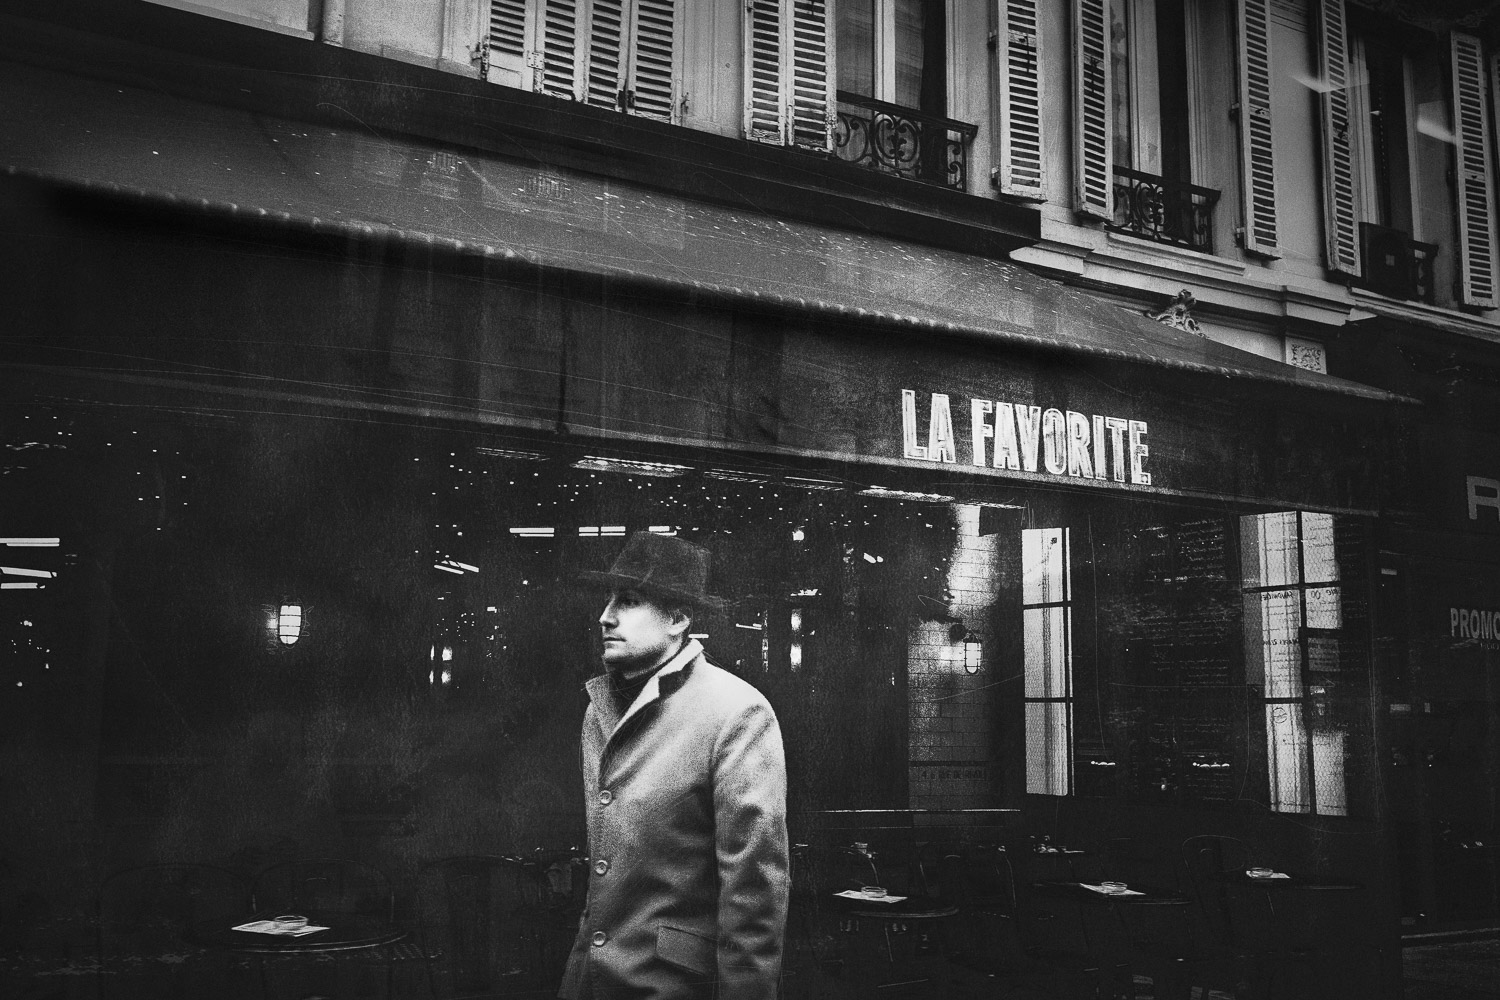 A man passes by cafe La Favorite, Paris, France